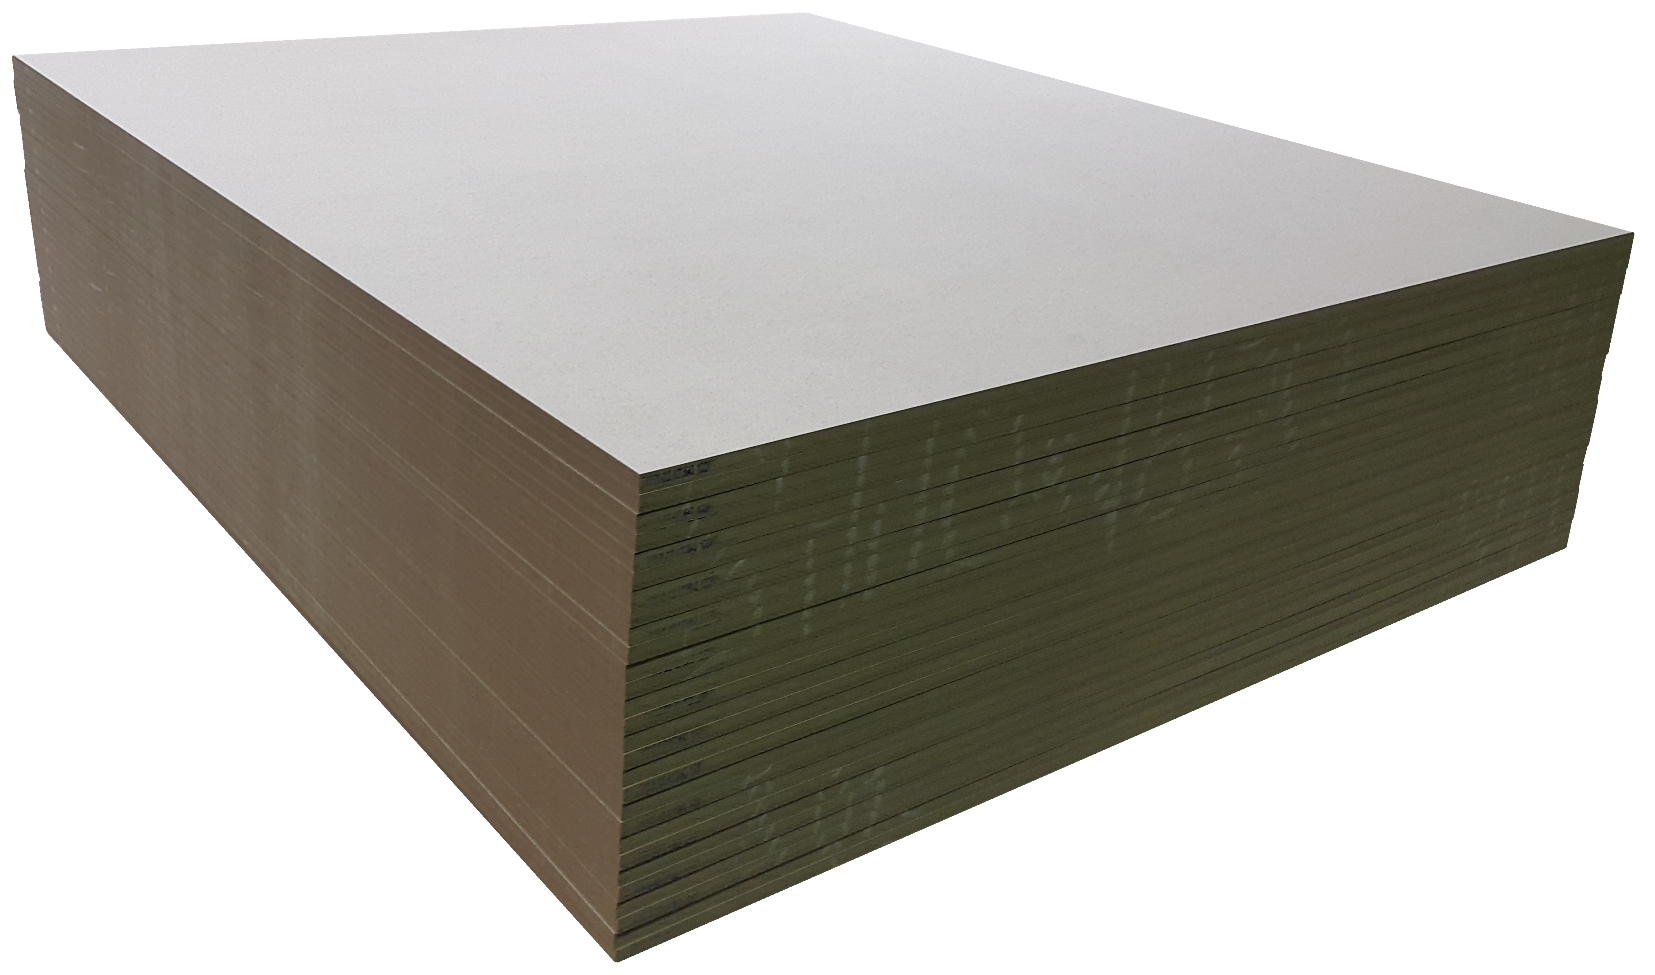 Medium density fiberboard mdf panels and sheets